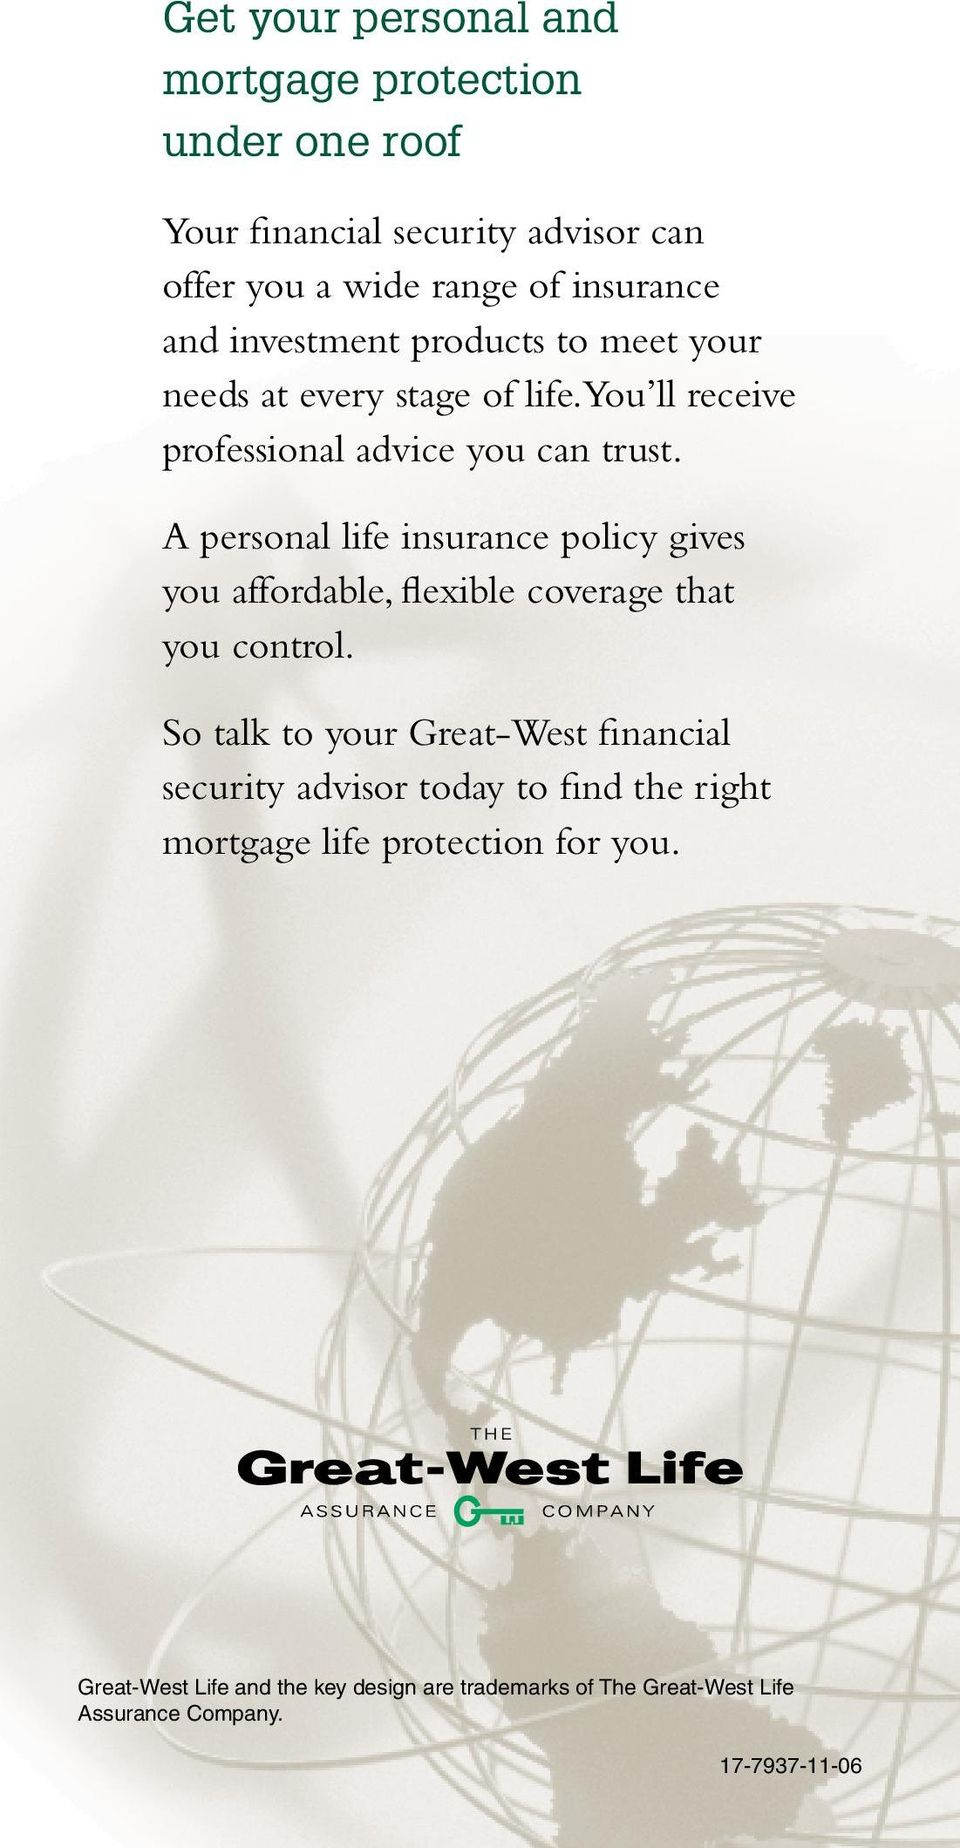 A personal life insurance policy gives you affordable, flexible coverage that you control.